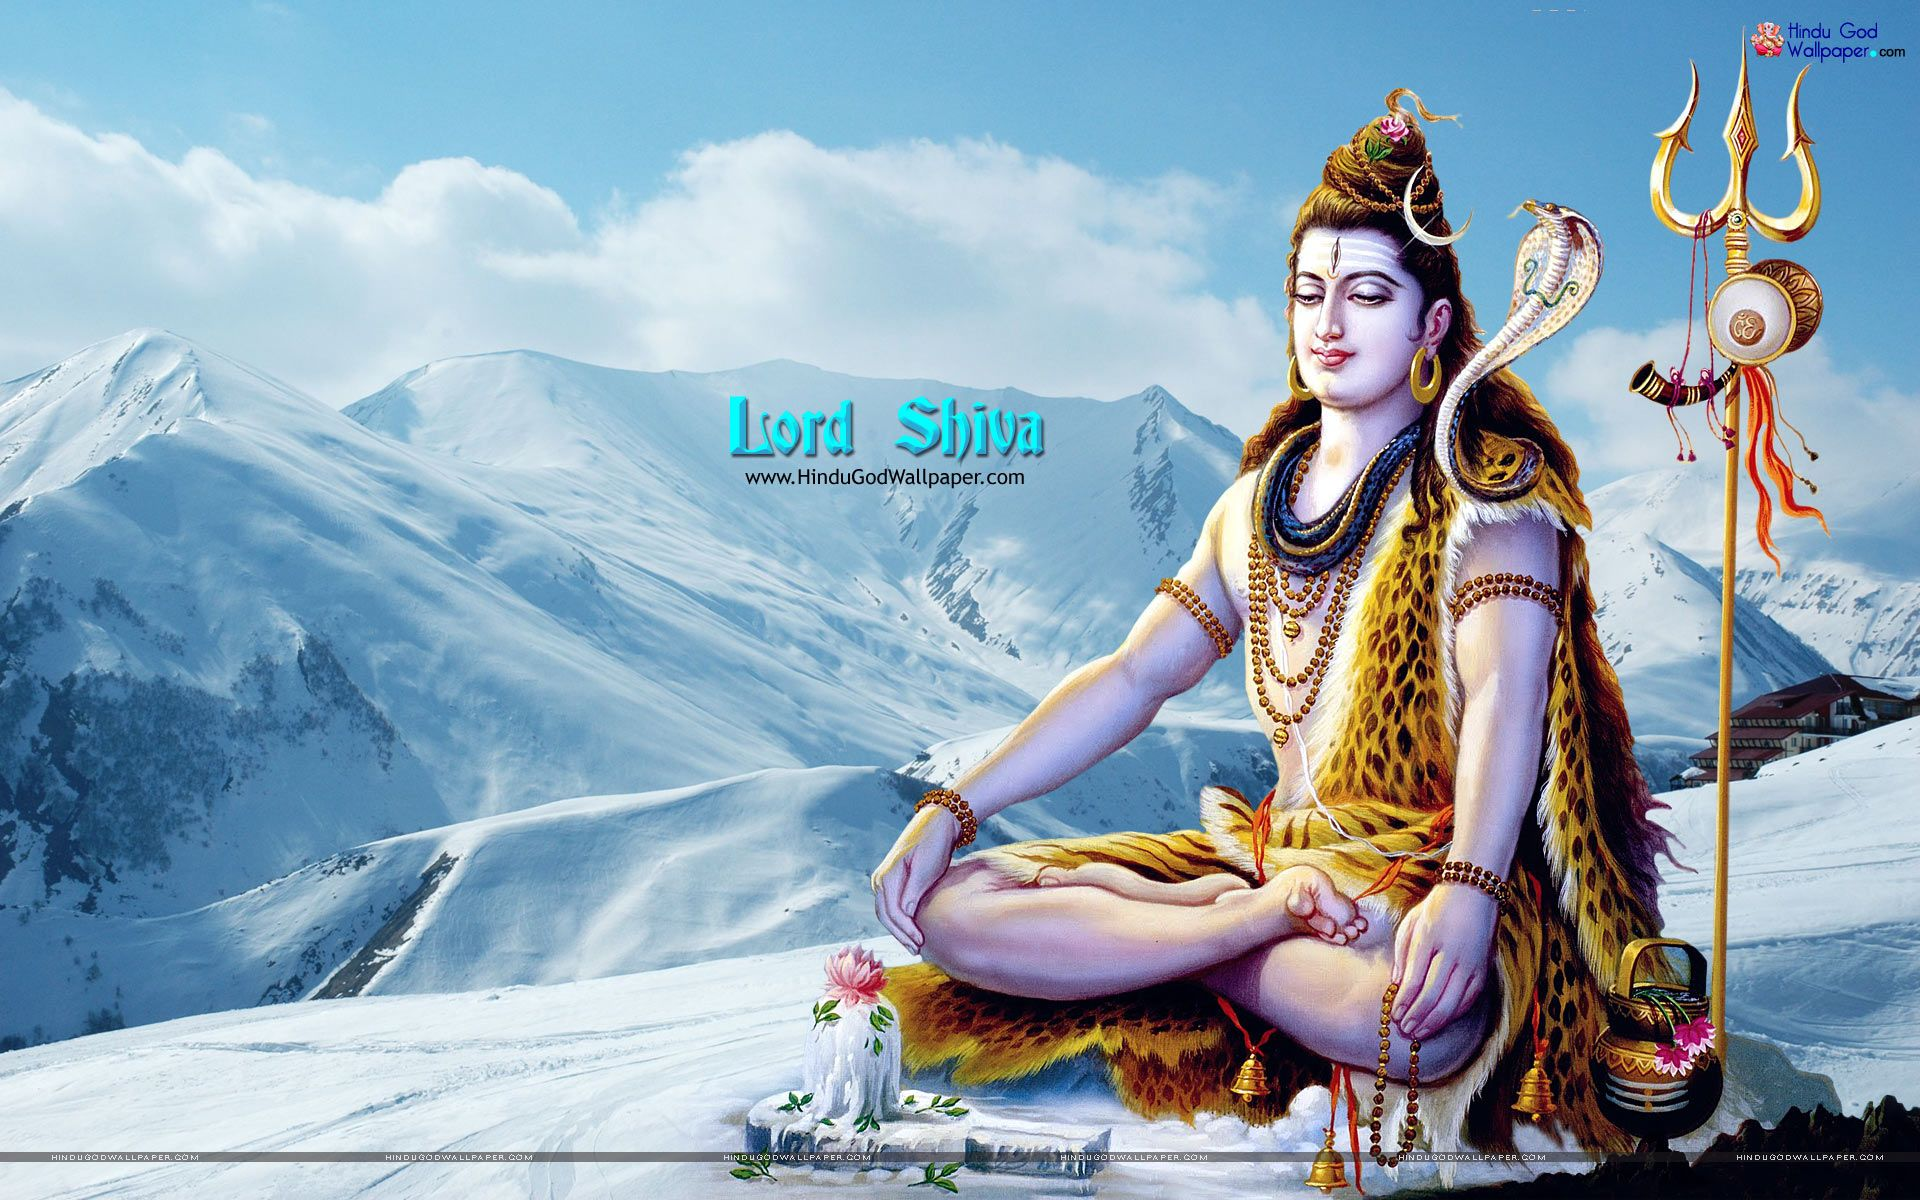 Lord Shiva Wallpaper Full Size Download Shiva Wallpaper Lord Shiva Hd Images Lord Shiva